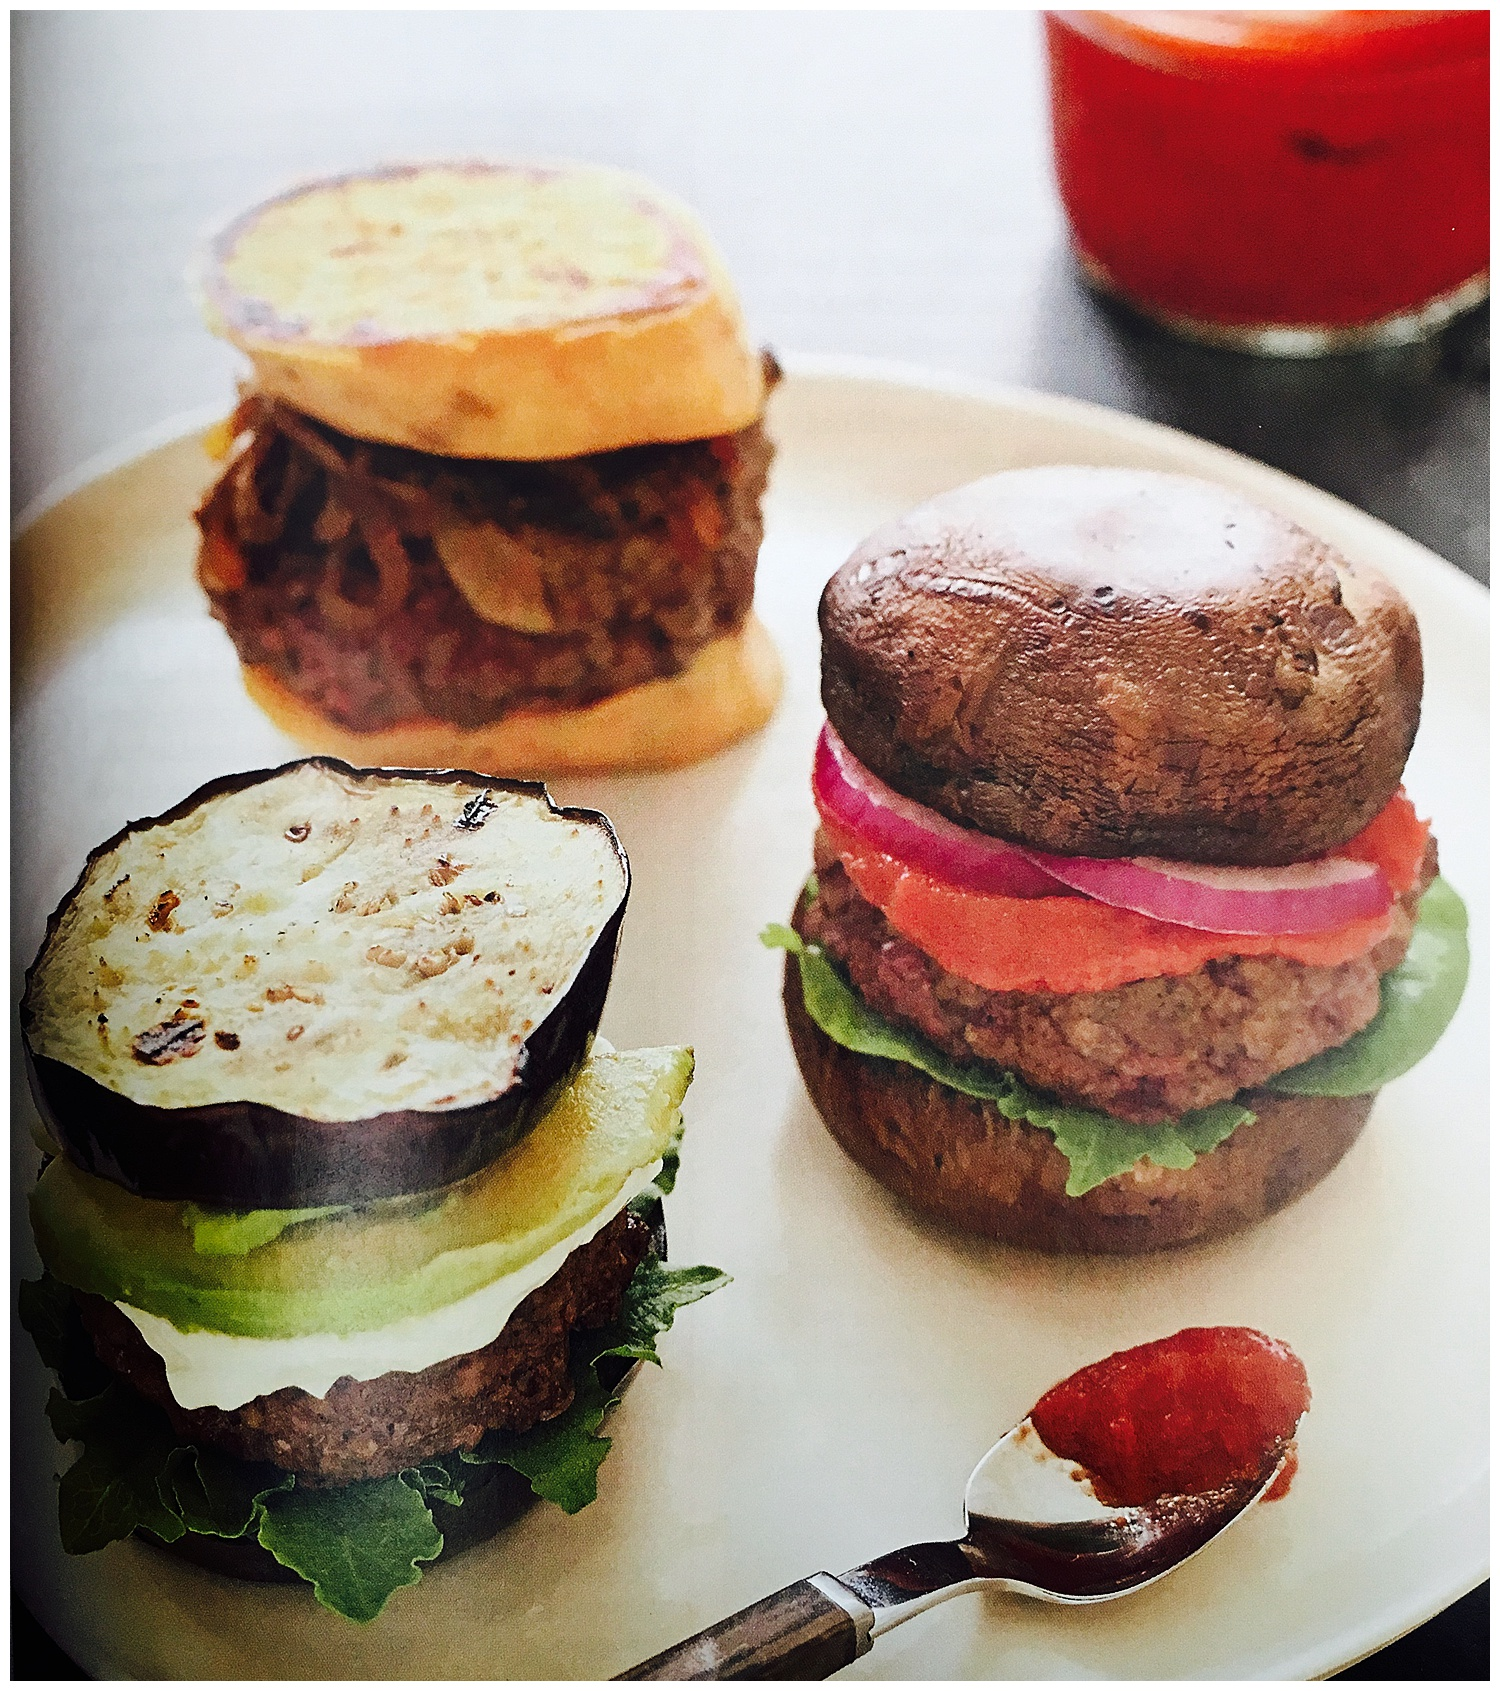 Burgers with veggie buns and home-made kethcup